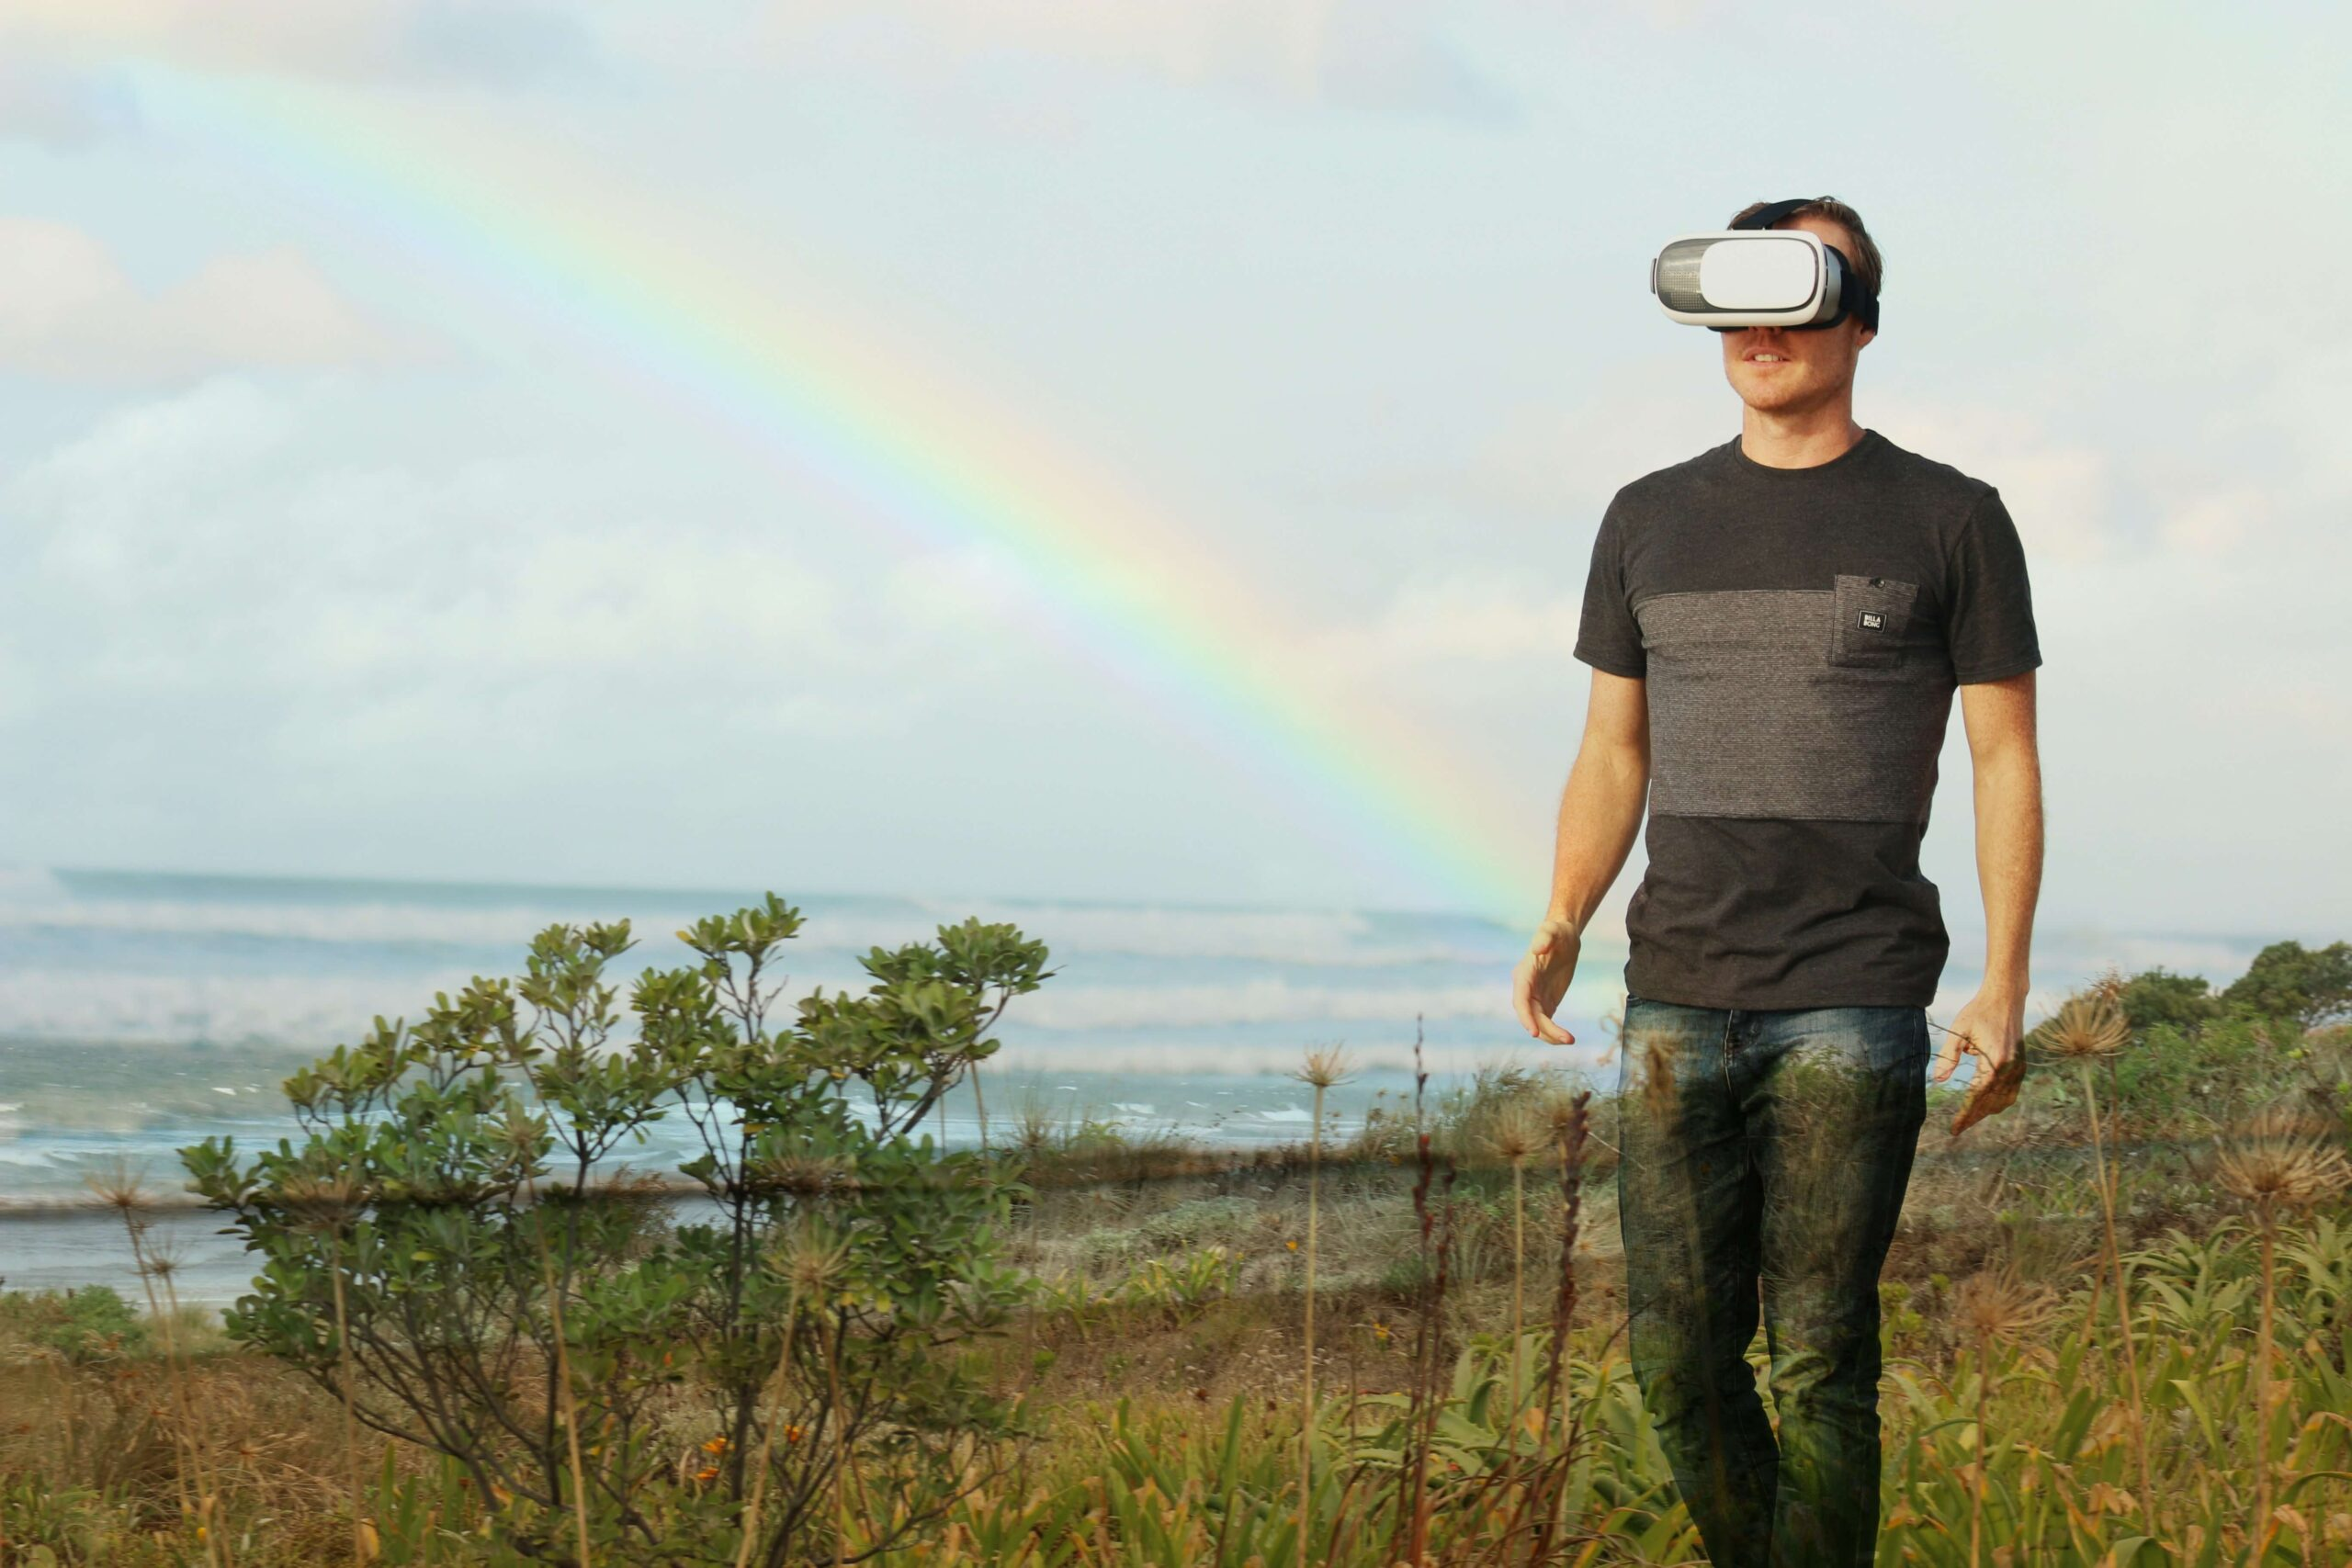 Image of a person who is enjoying augmented reality trend